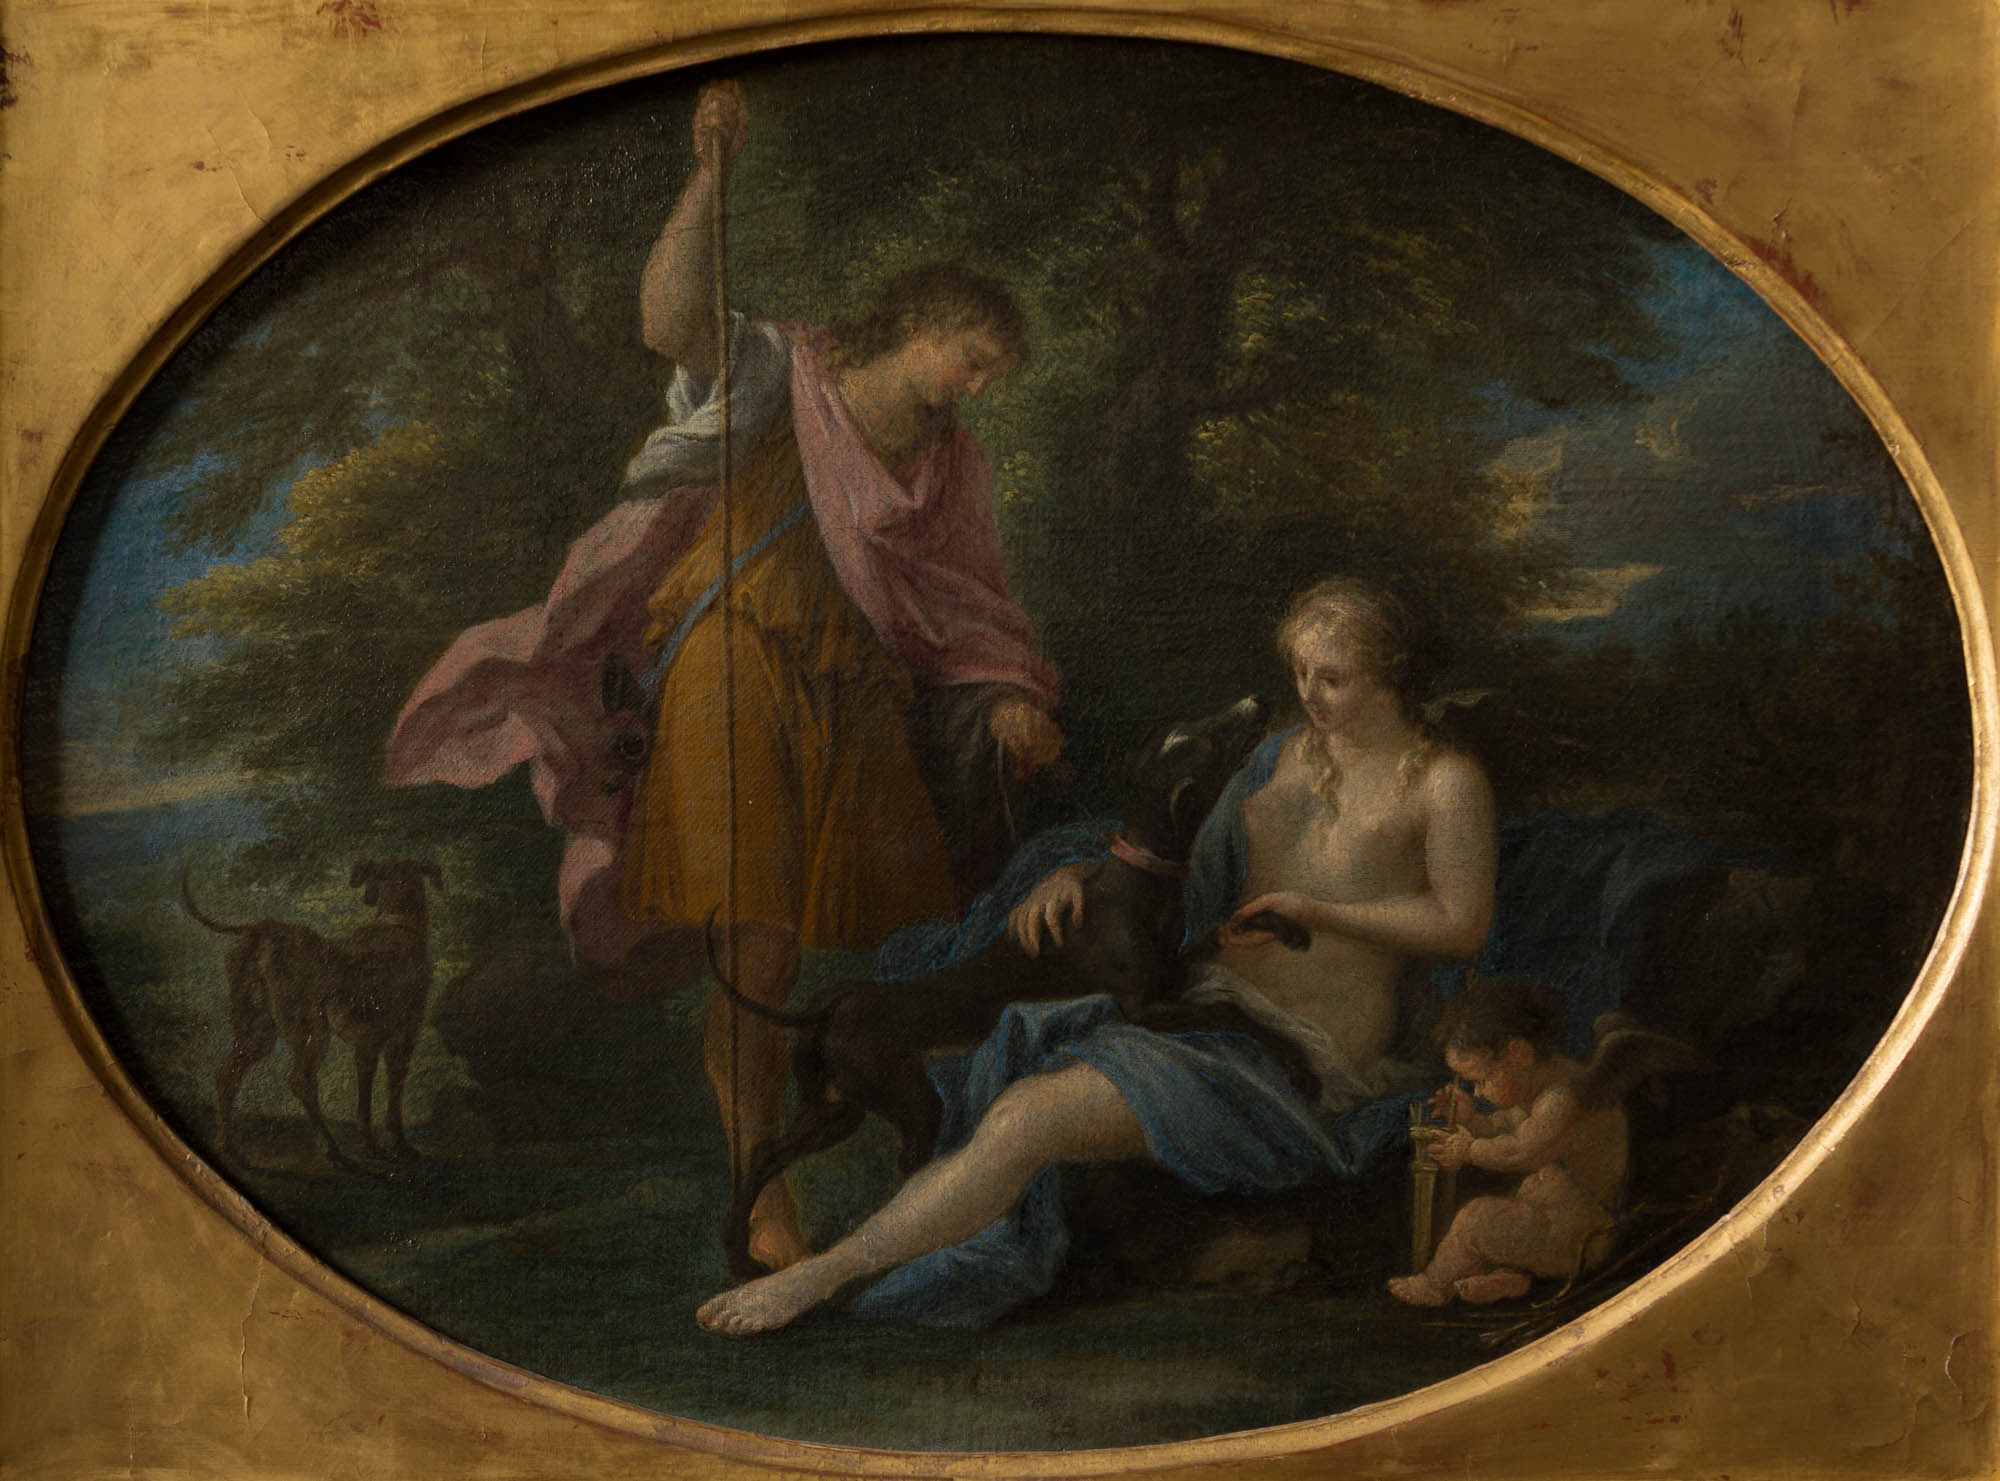 Venus and Adonis, by  Filippo Lauri (1623-1694).